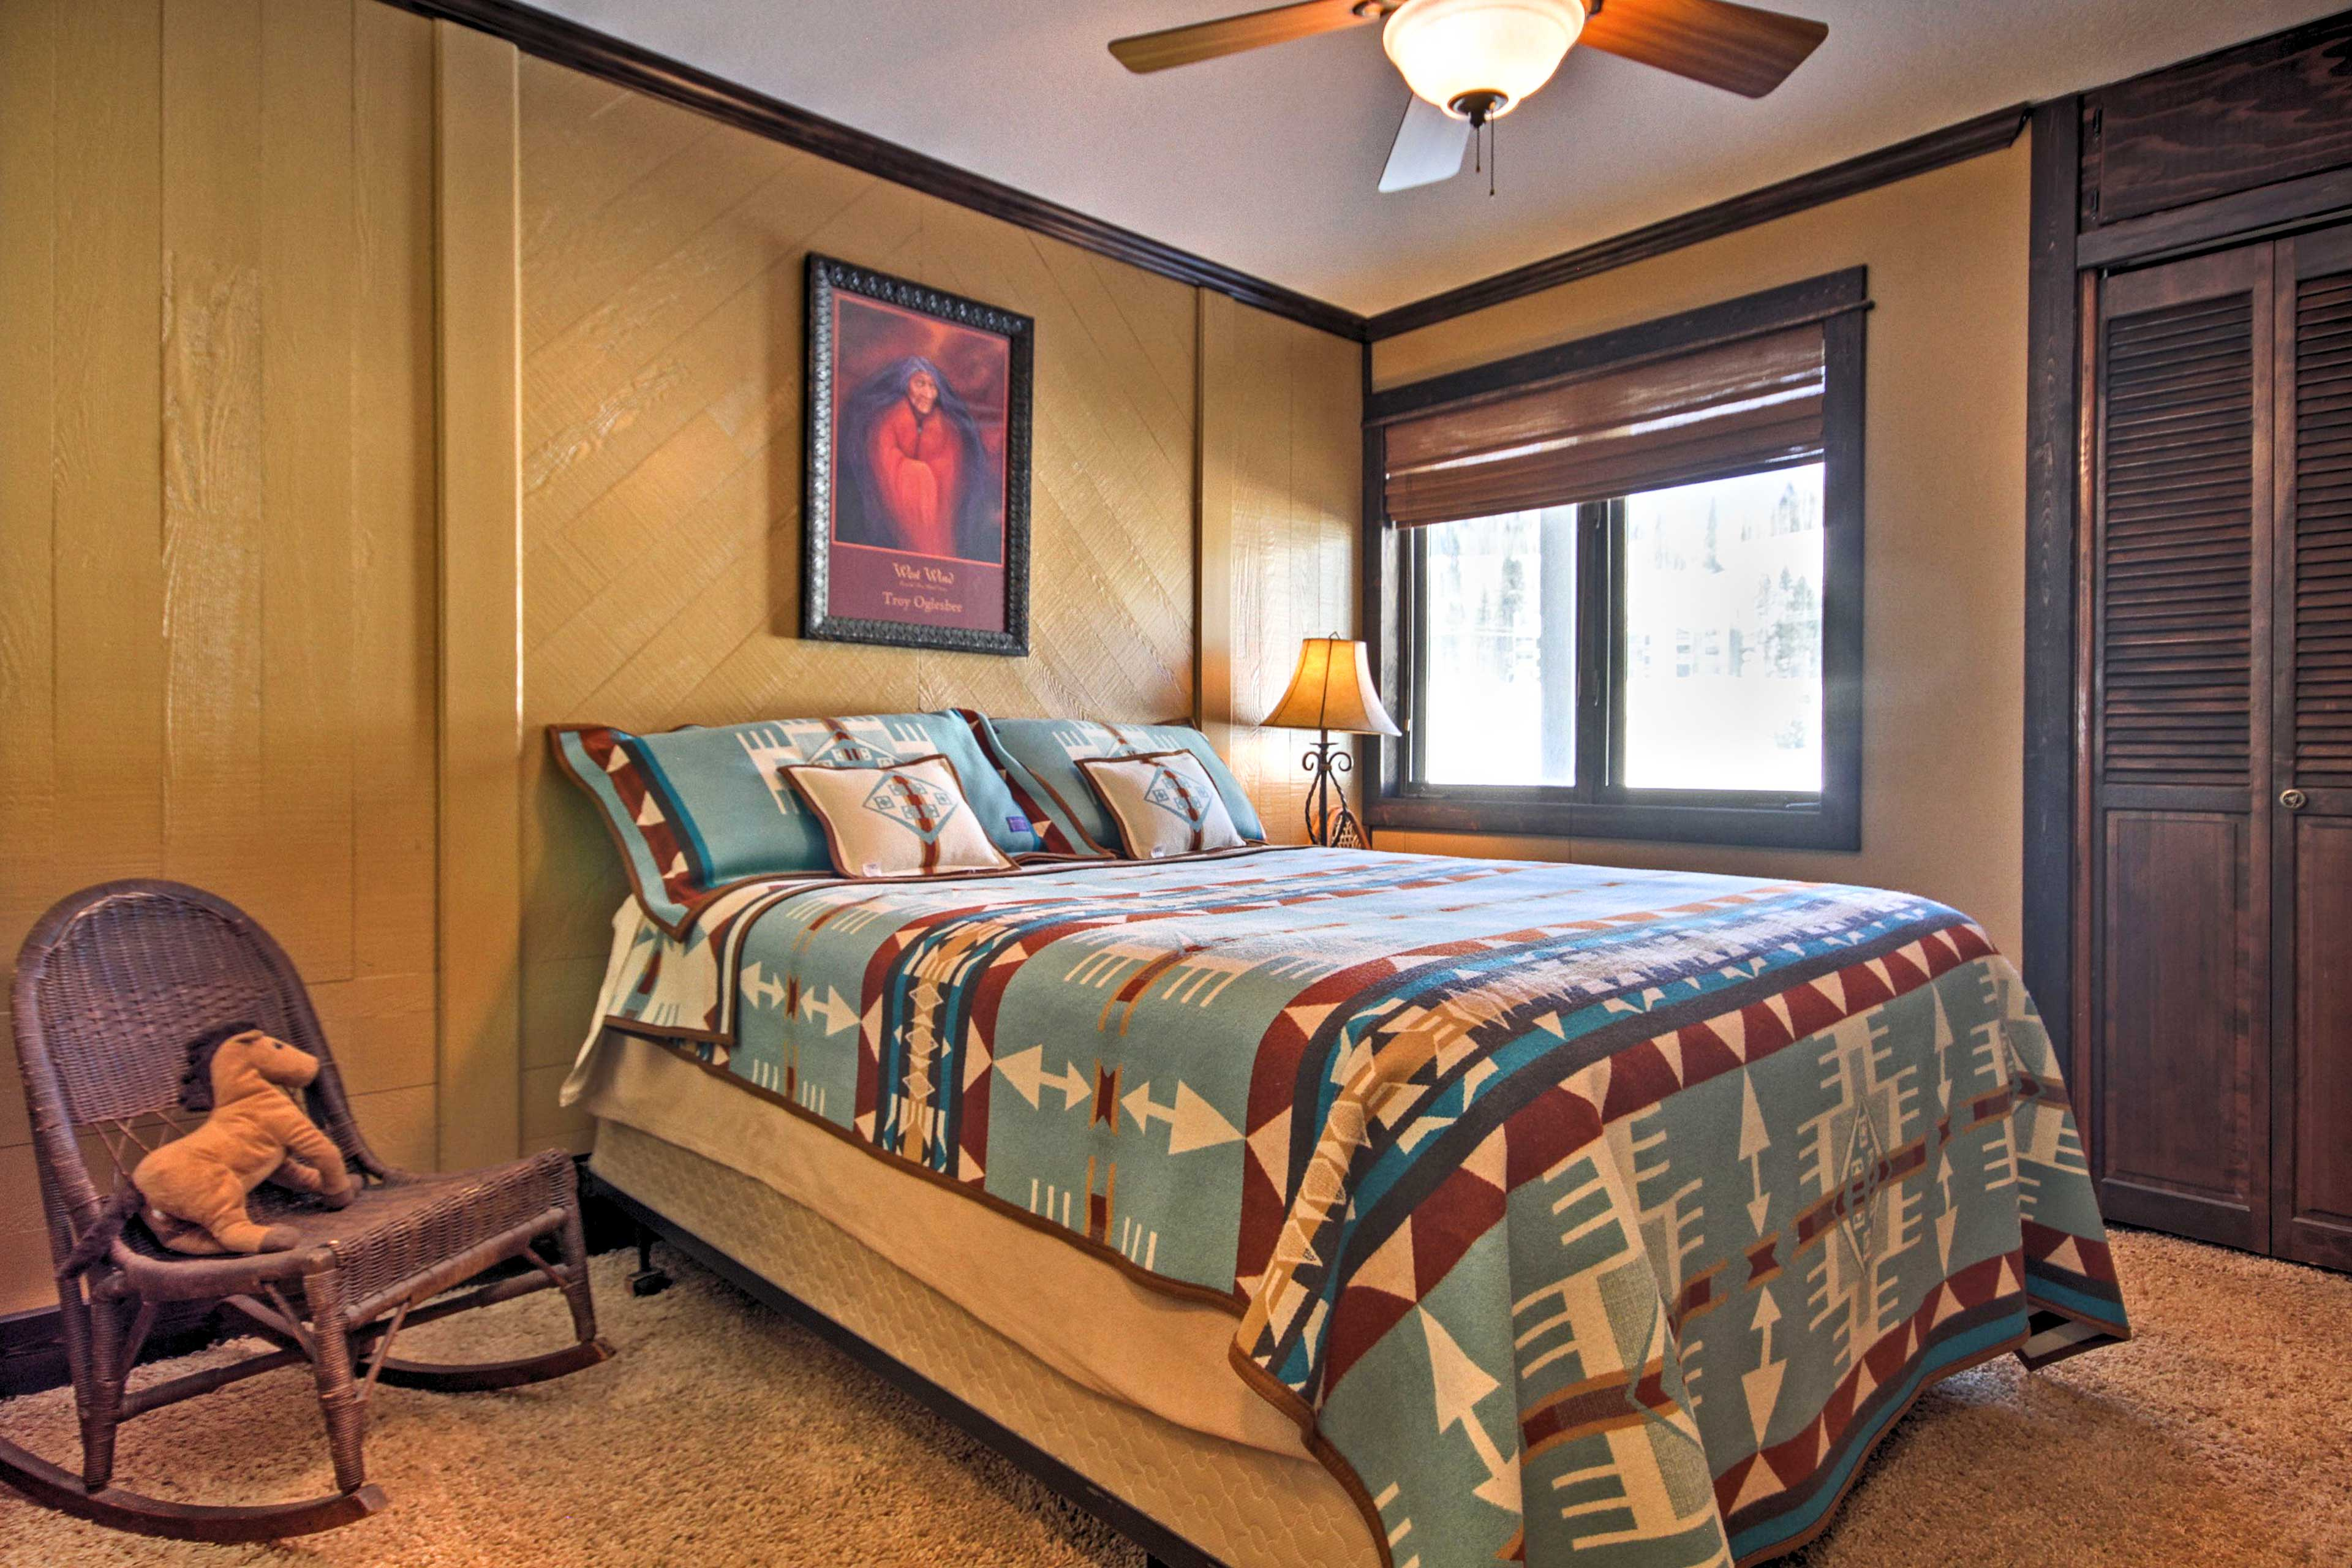 Rest easy on the queen bed in this bedroom.